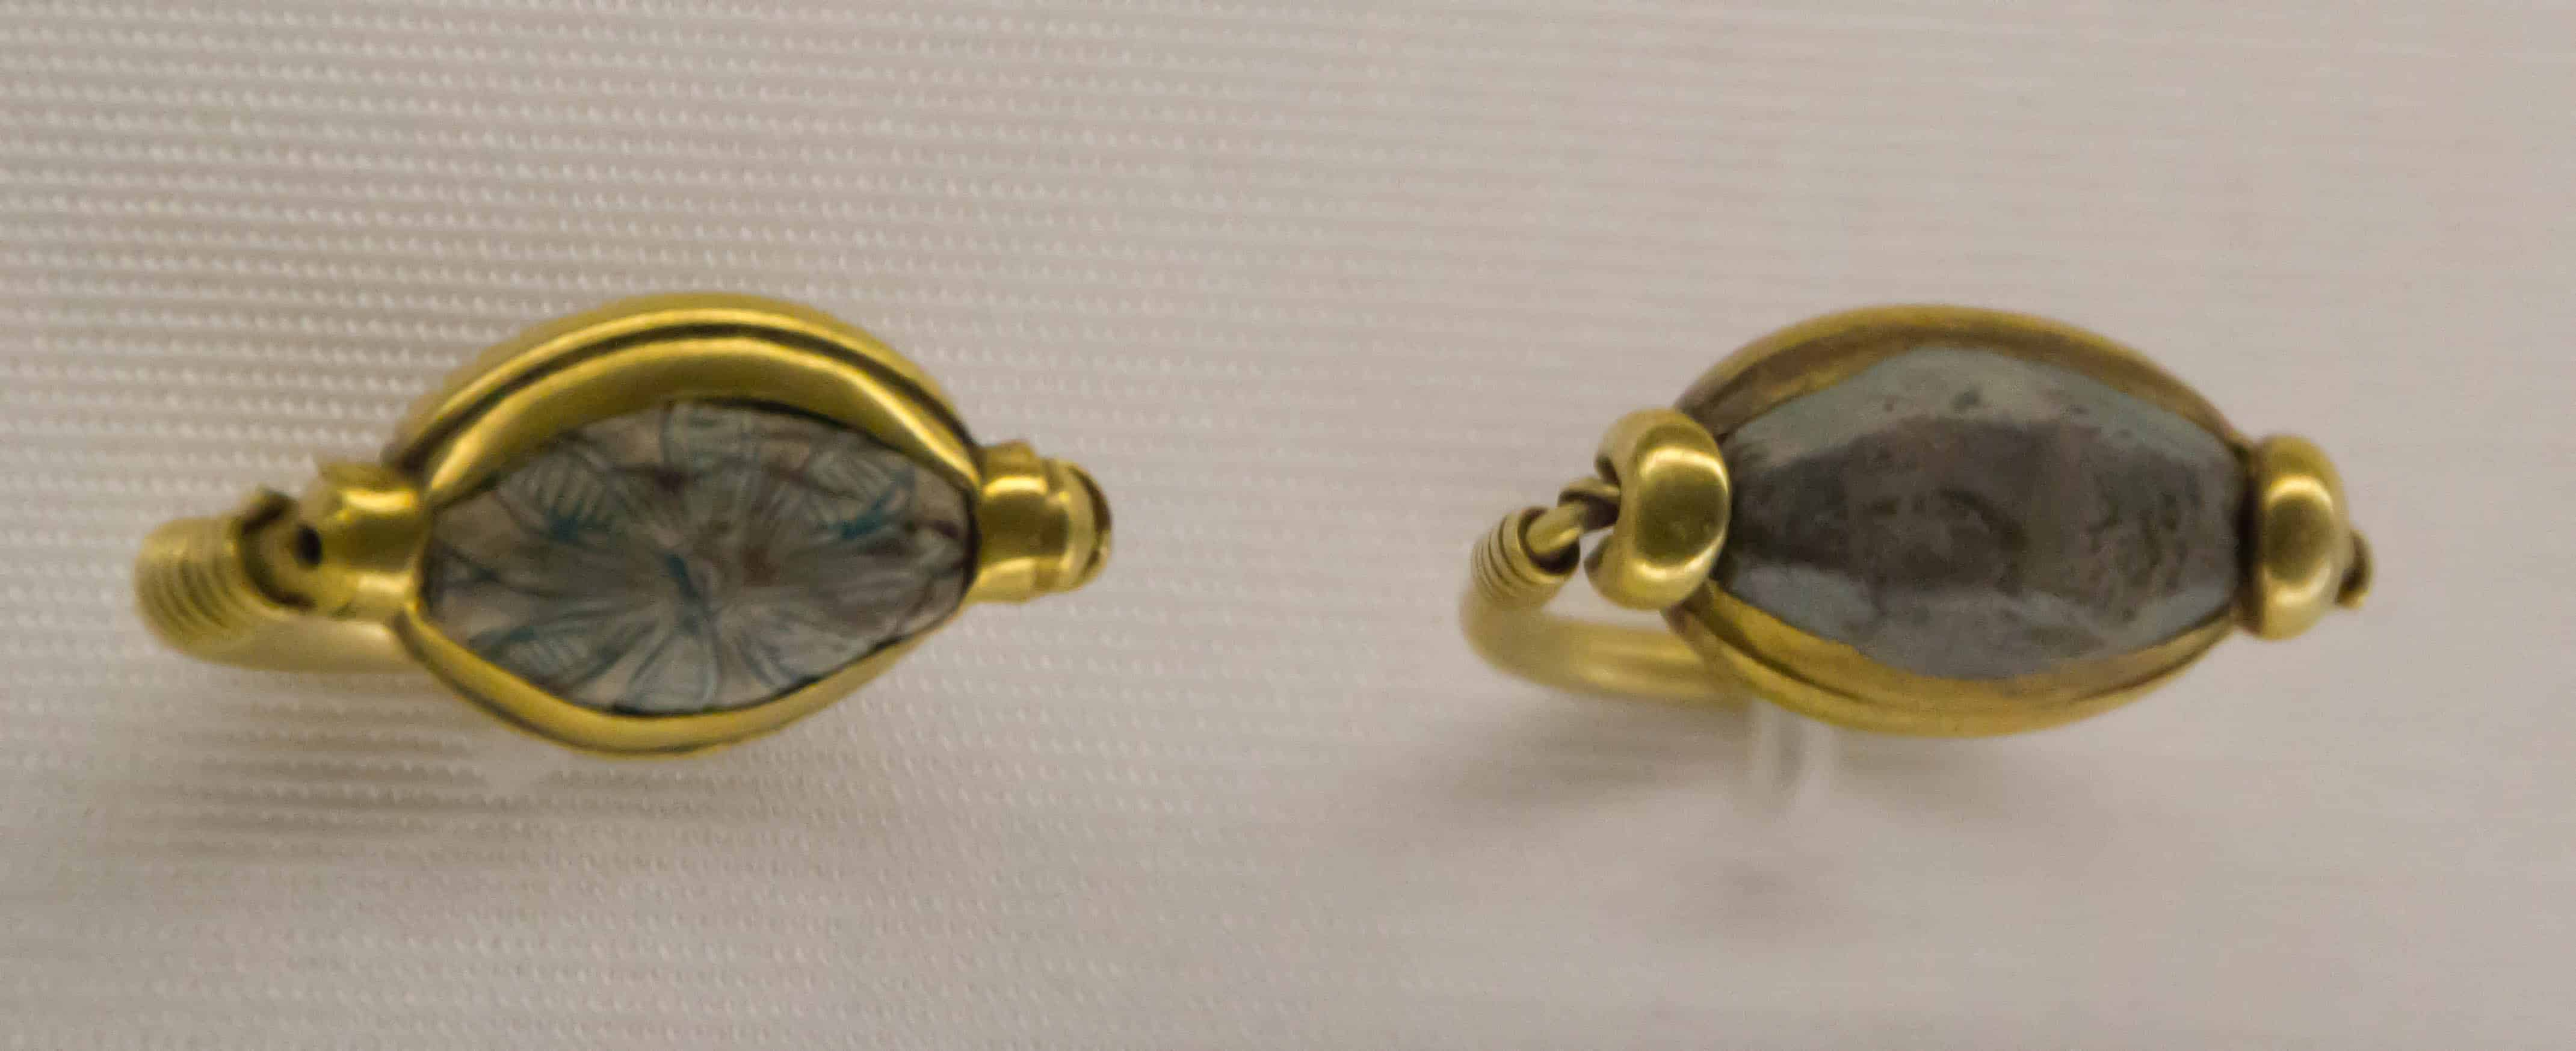 Egyptian Rings.jpg